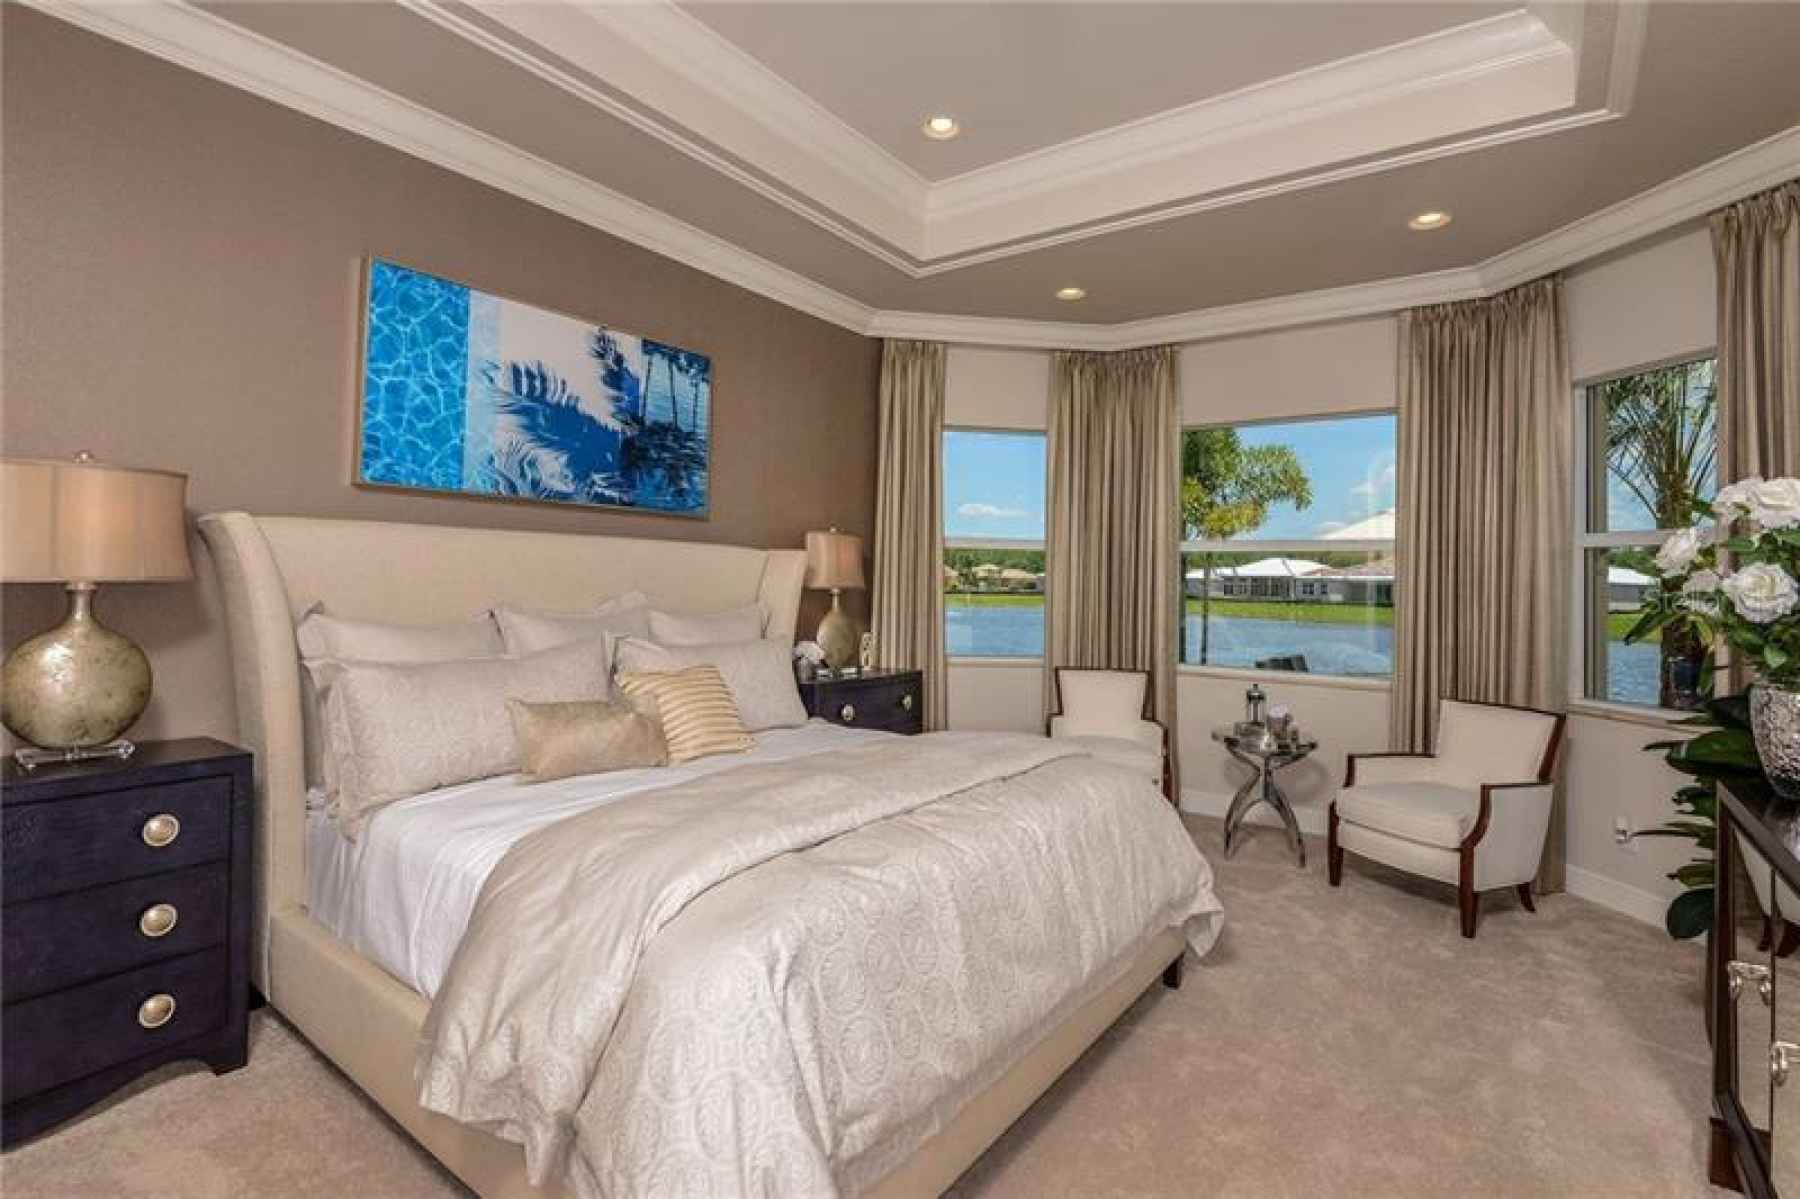 The Bellagio Royal Collection Builders Pics - Master Bedroom View.